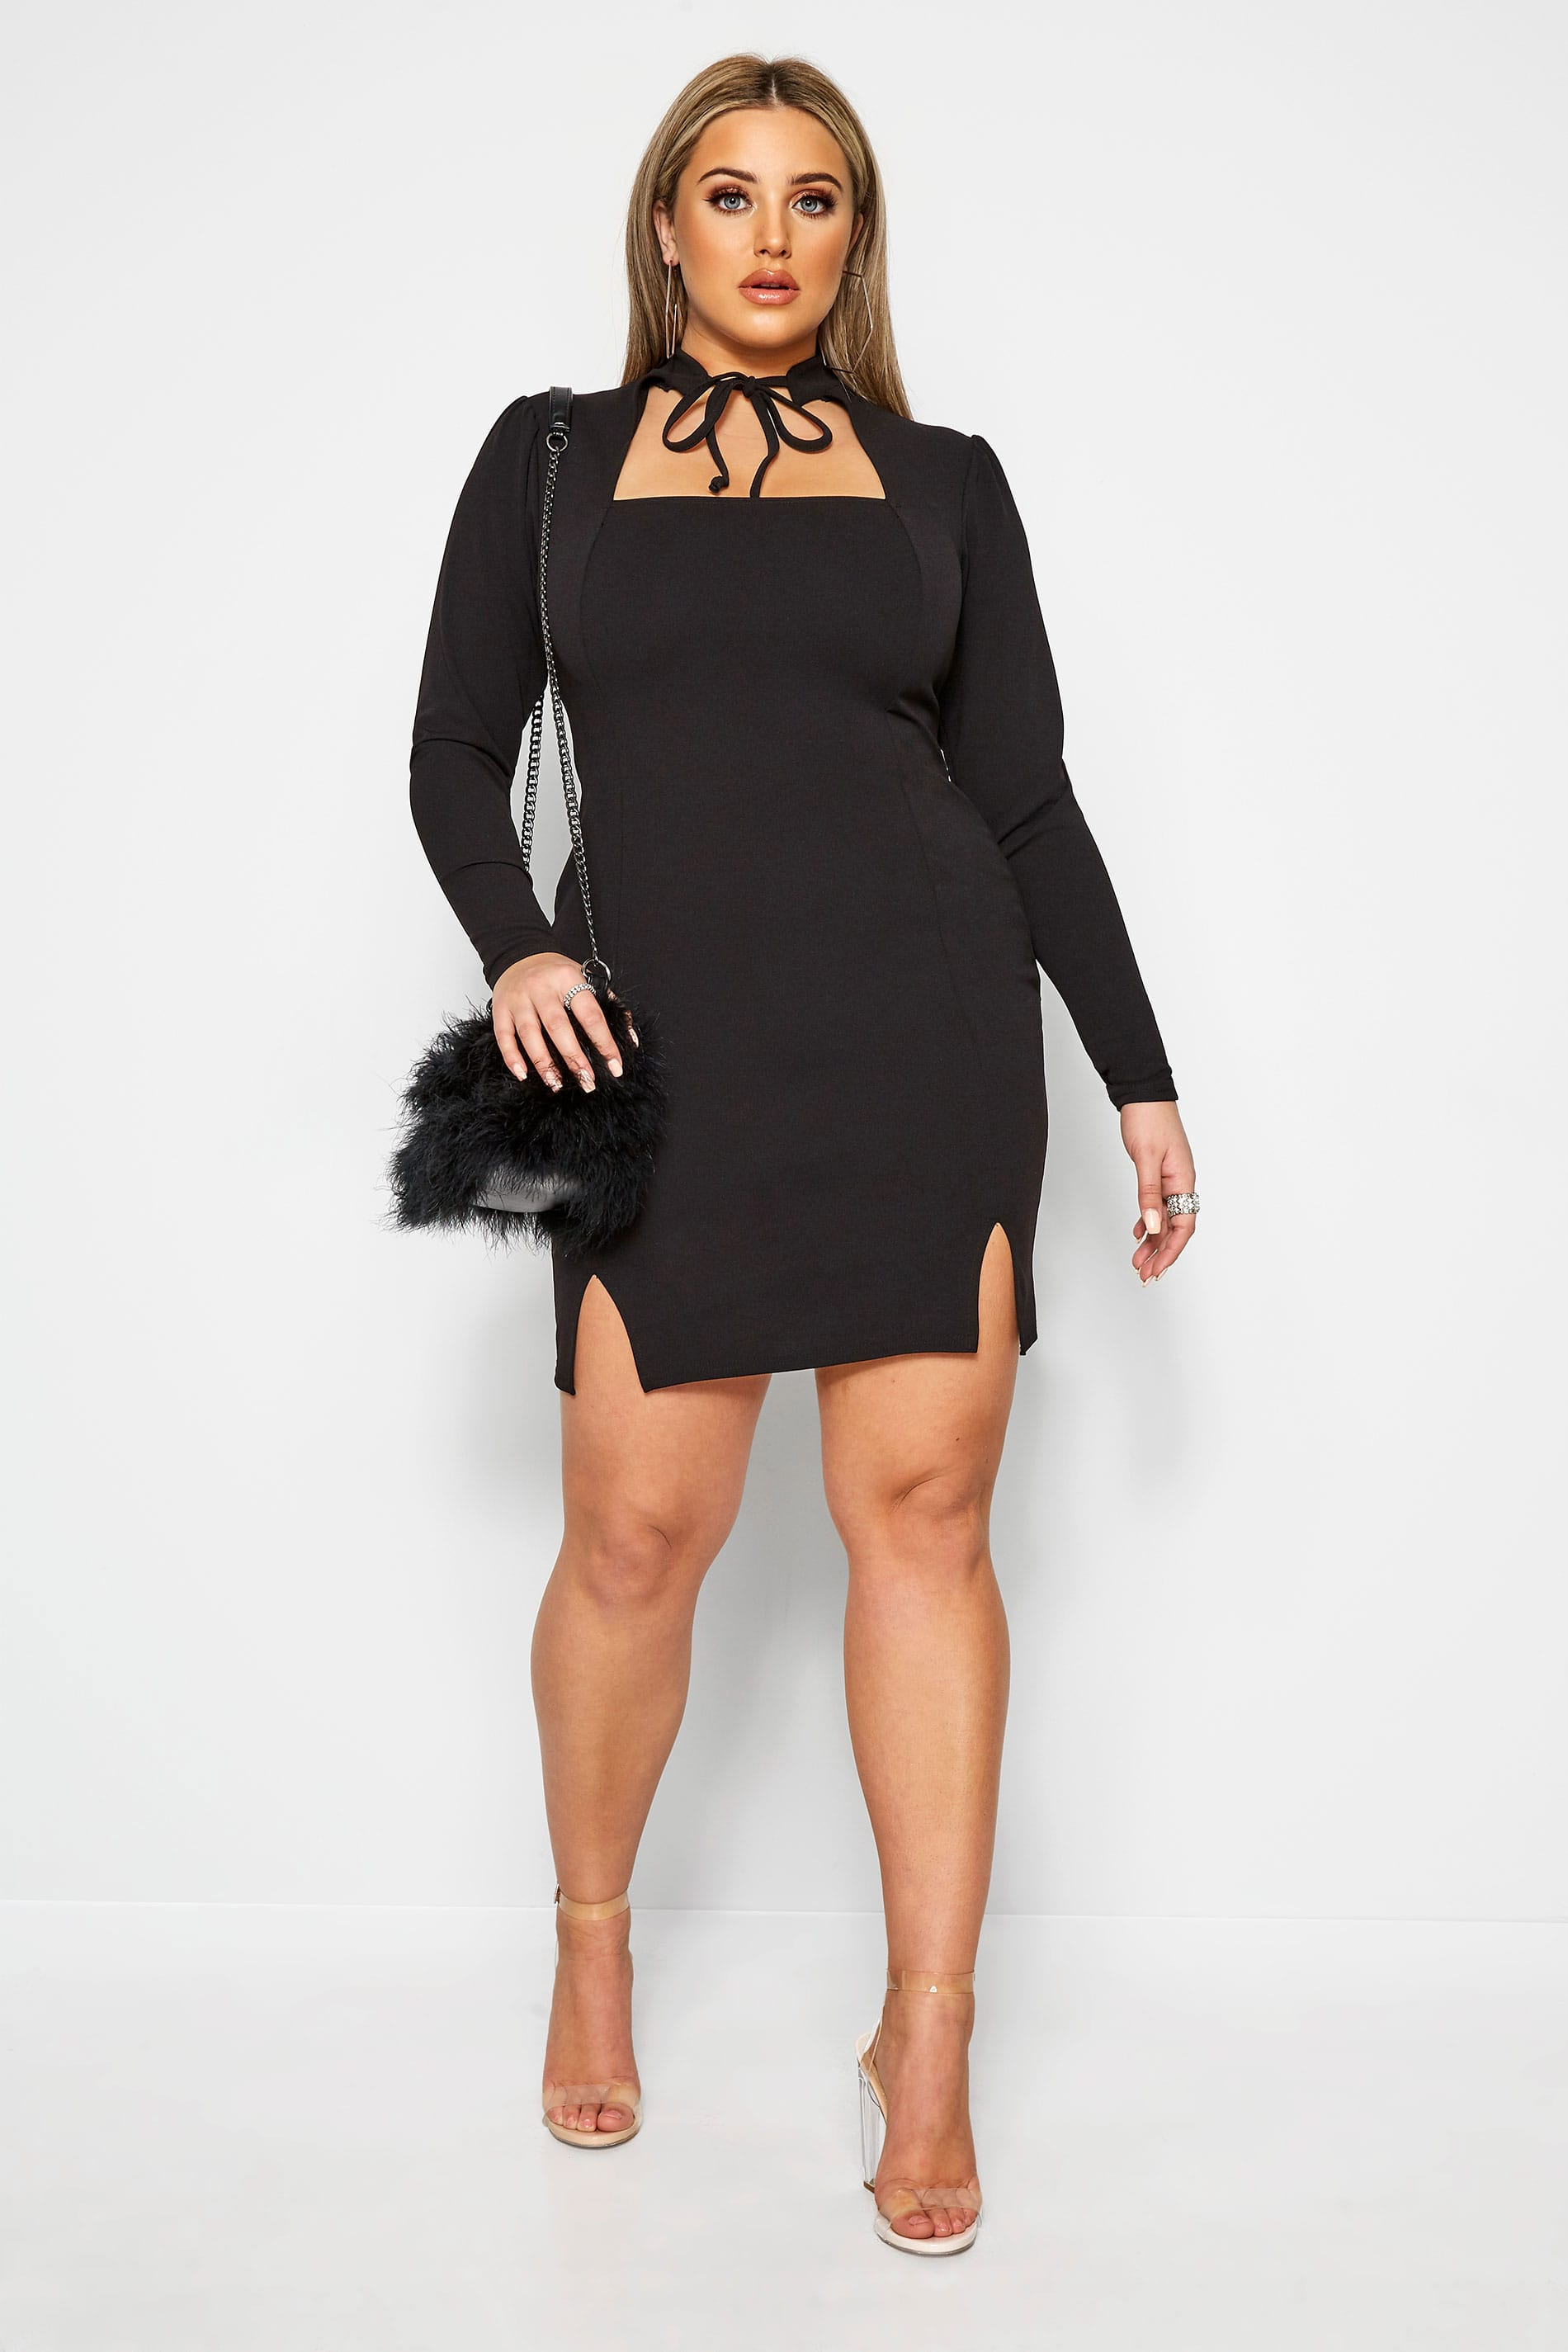 LIMITED COLLECTION Black Tie Neck Bodycon Dress